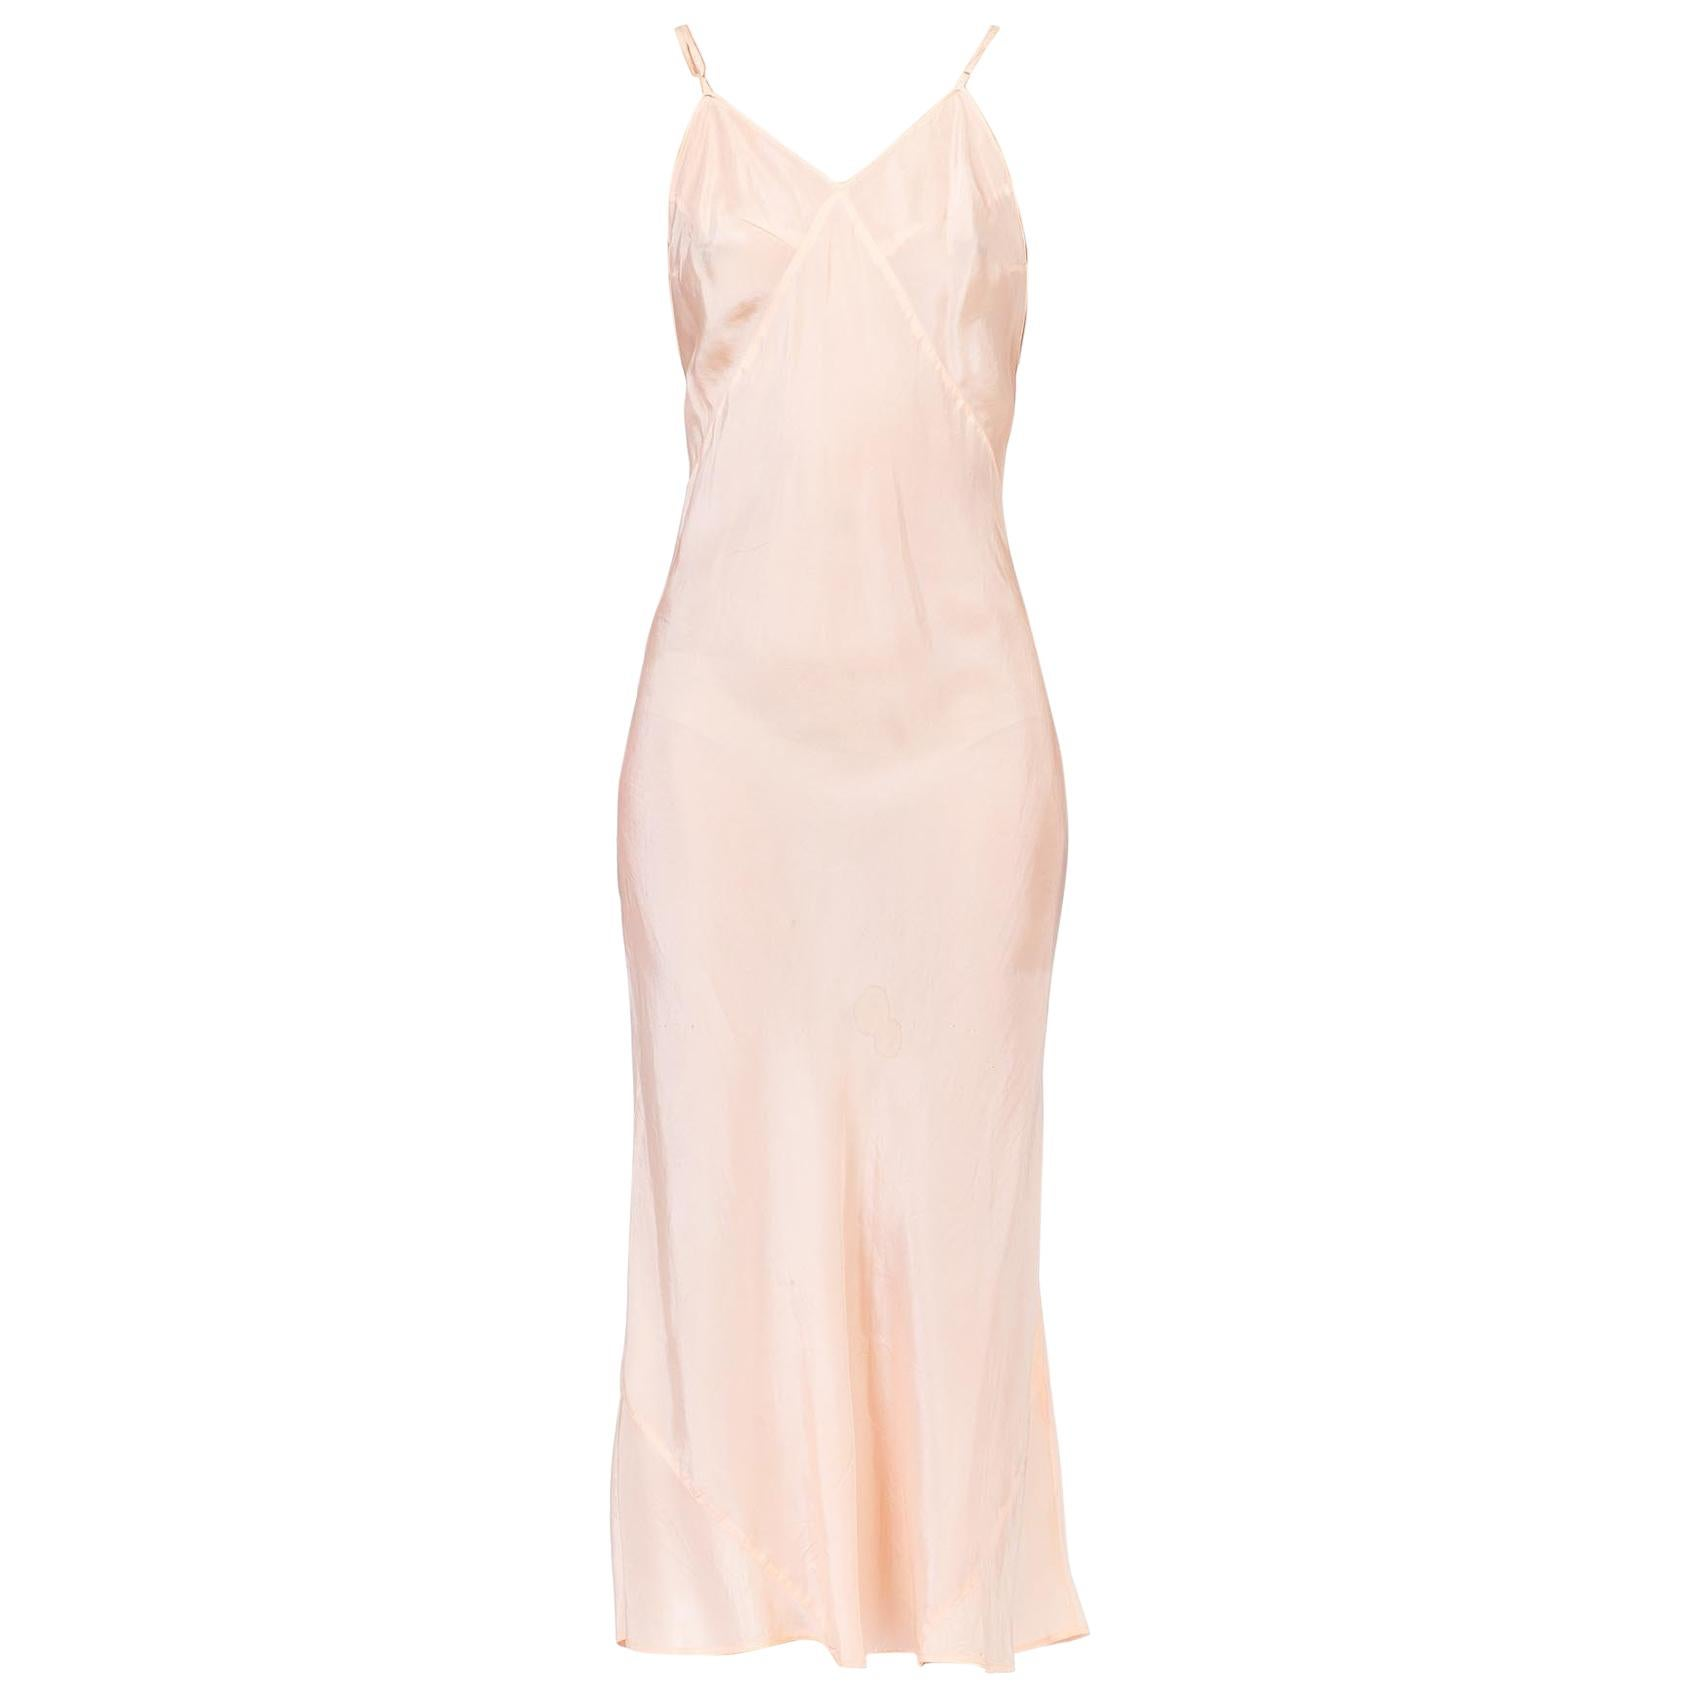 1930S Blush Pink Bias Cut Silk Crepe De Chine Rare Low Back Slip Dress